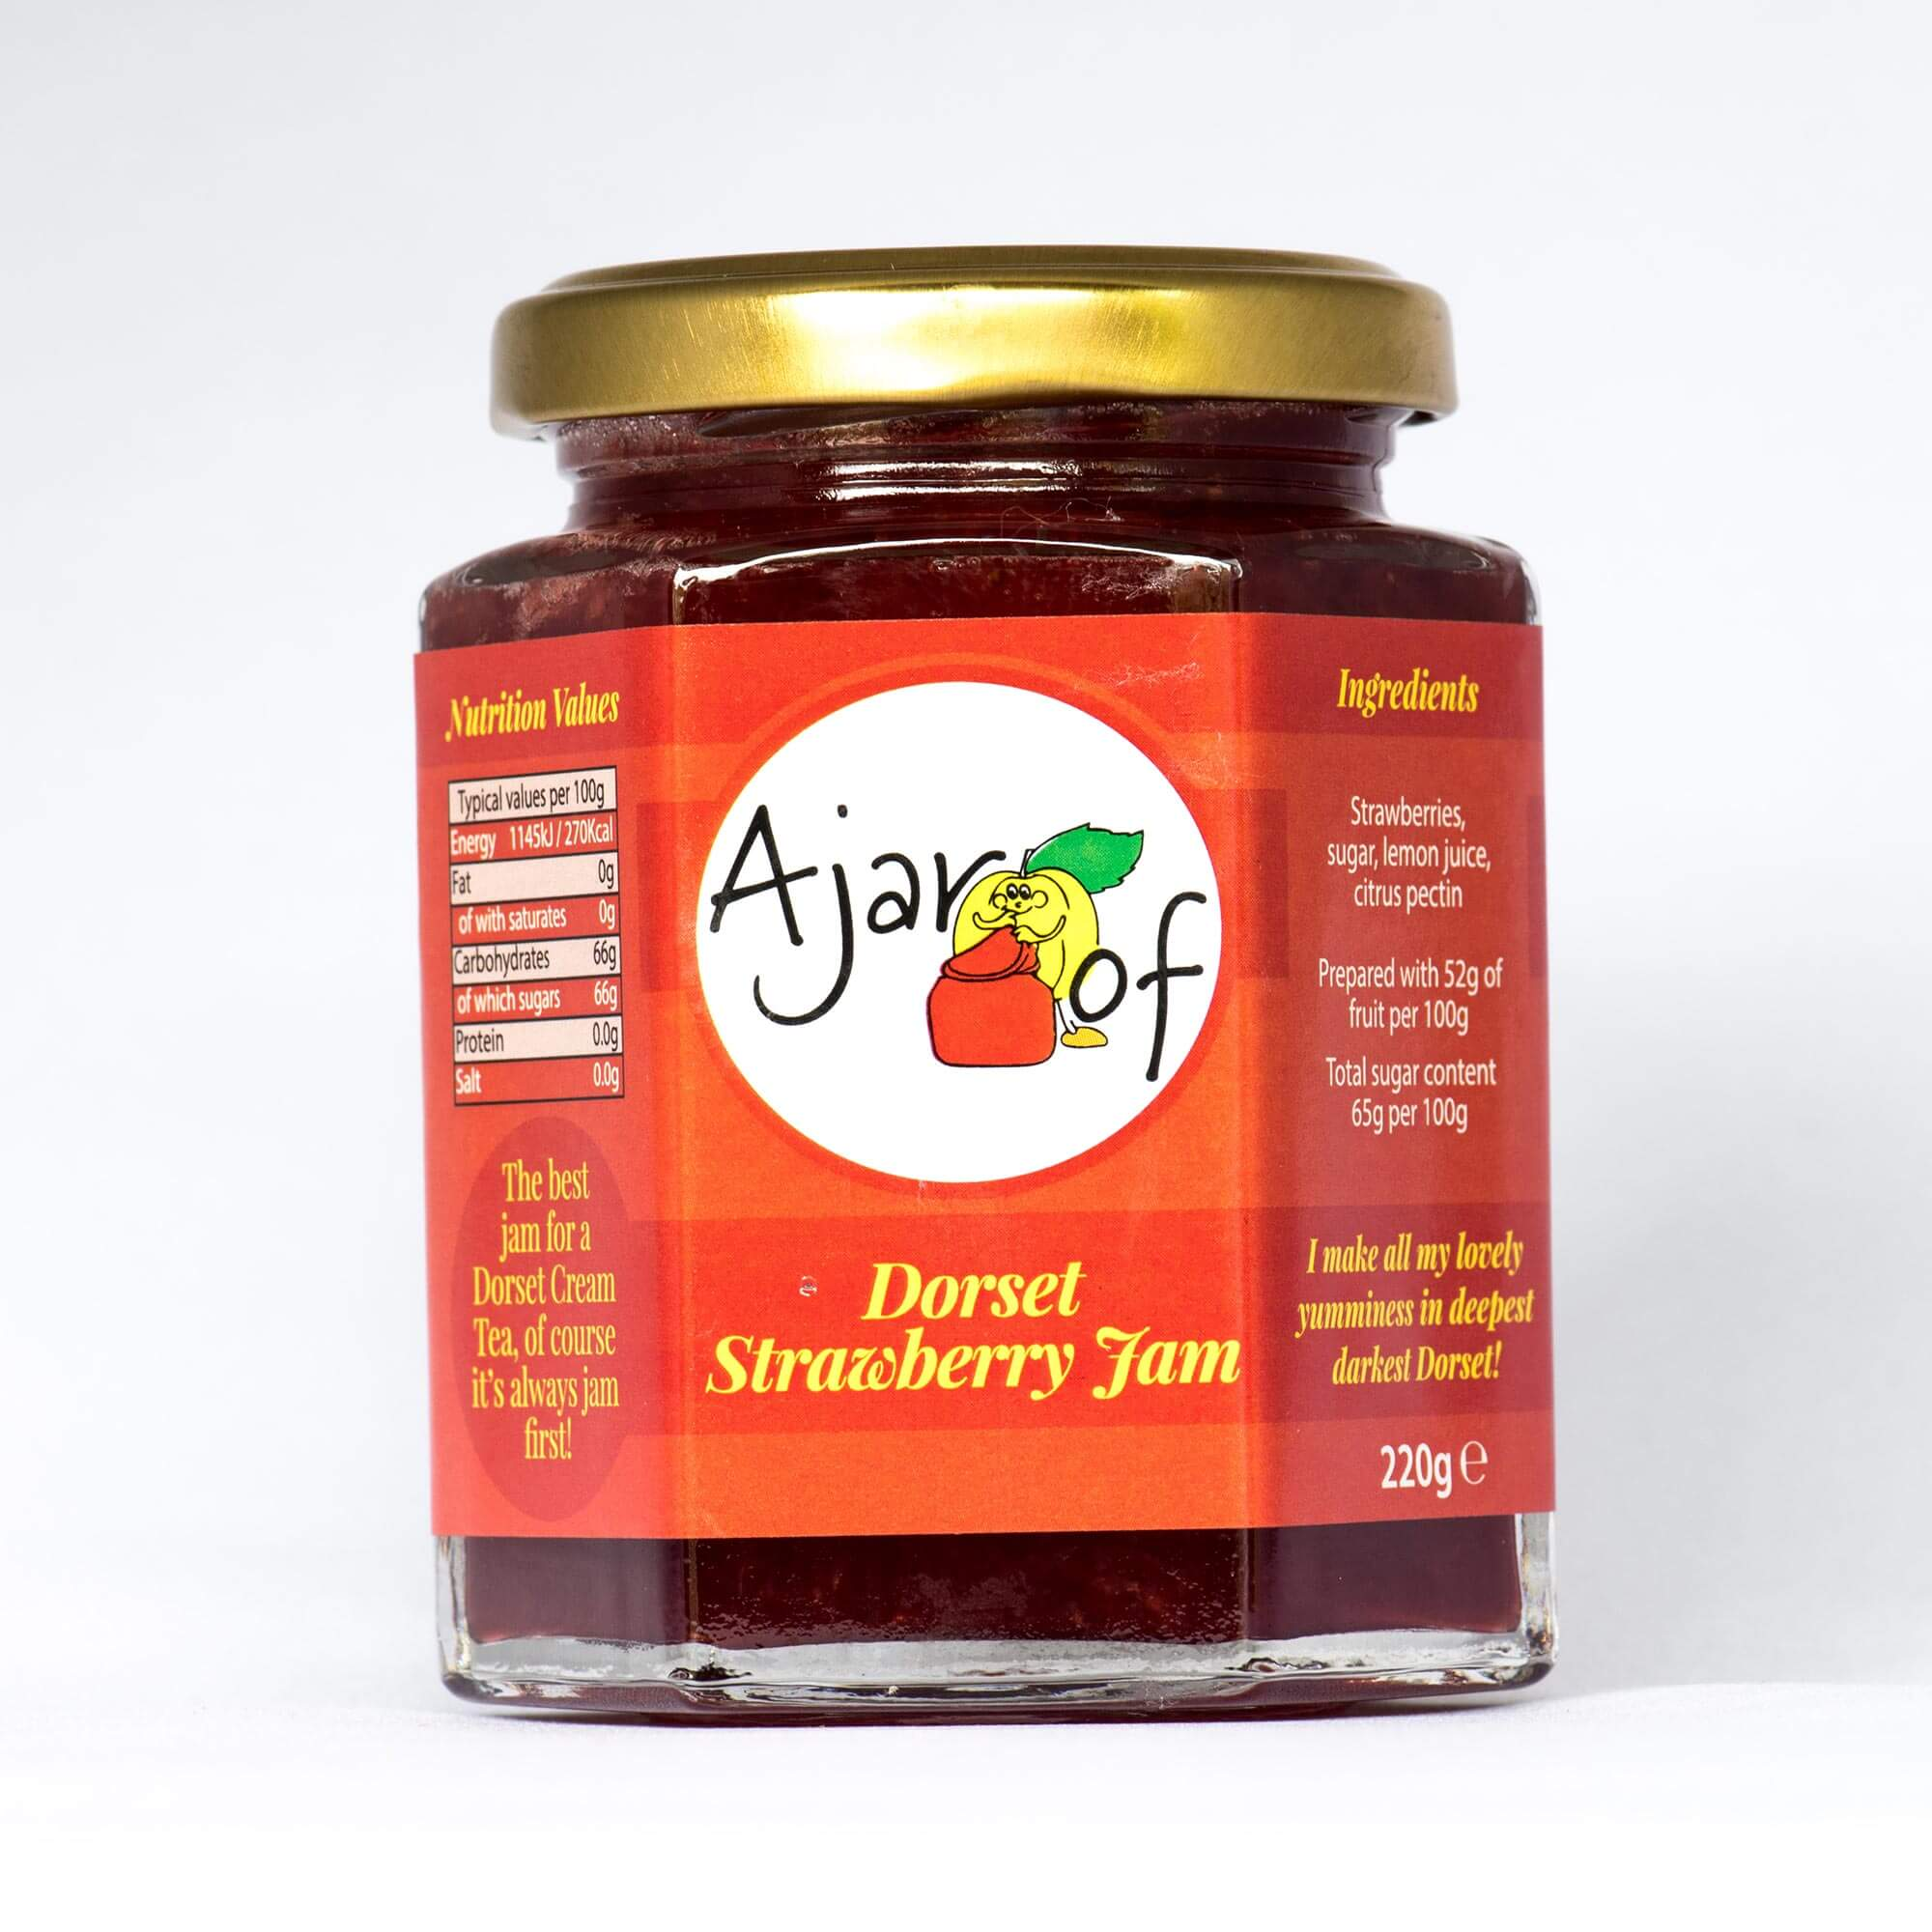 dorset-strawberry-jam